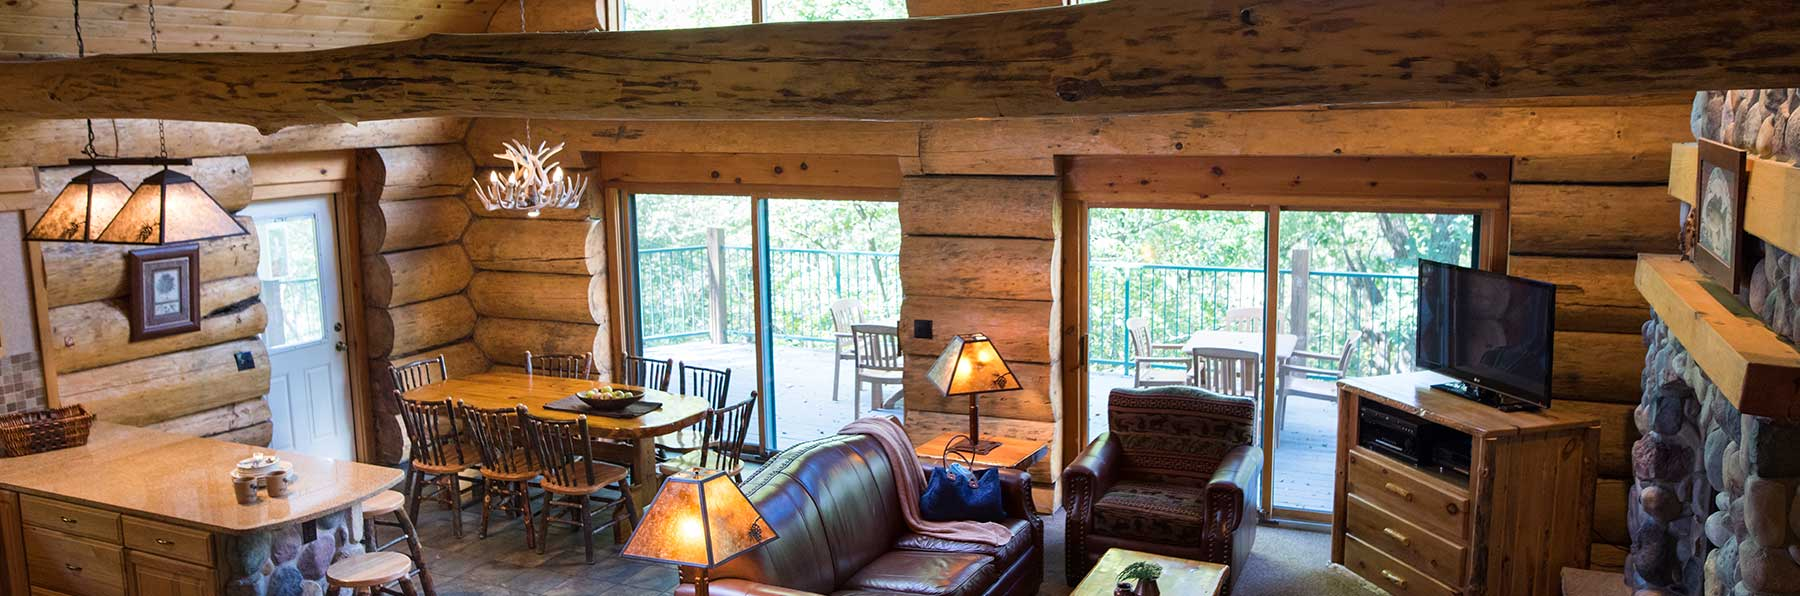 Fabulous 5 Bedroom Retreat Cabin Wilderness Resort Wisconsin Dells Interior Design Ideas Clesiryabchikinfo